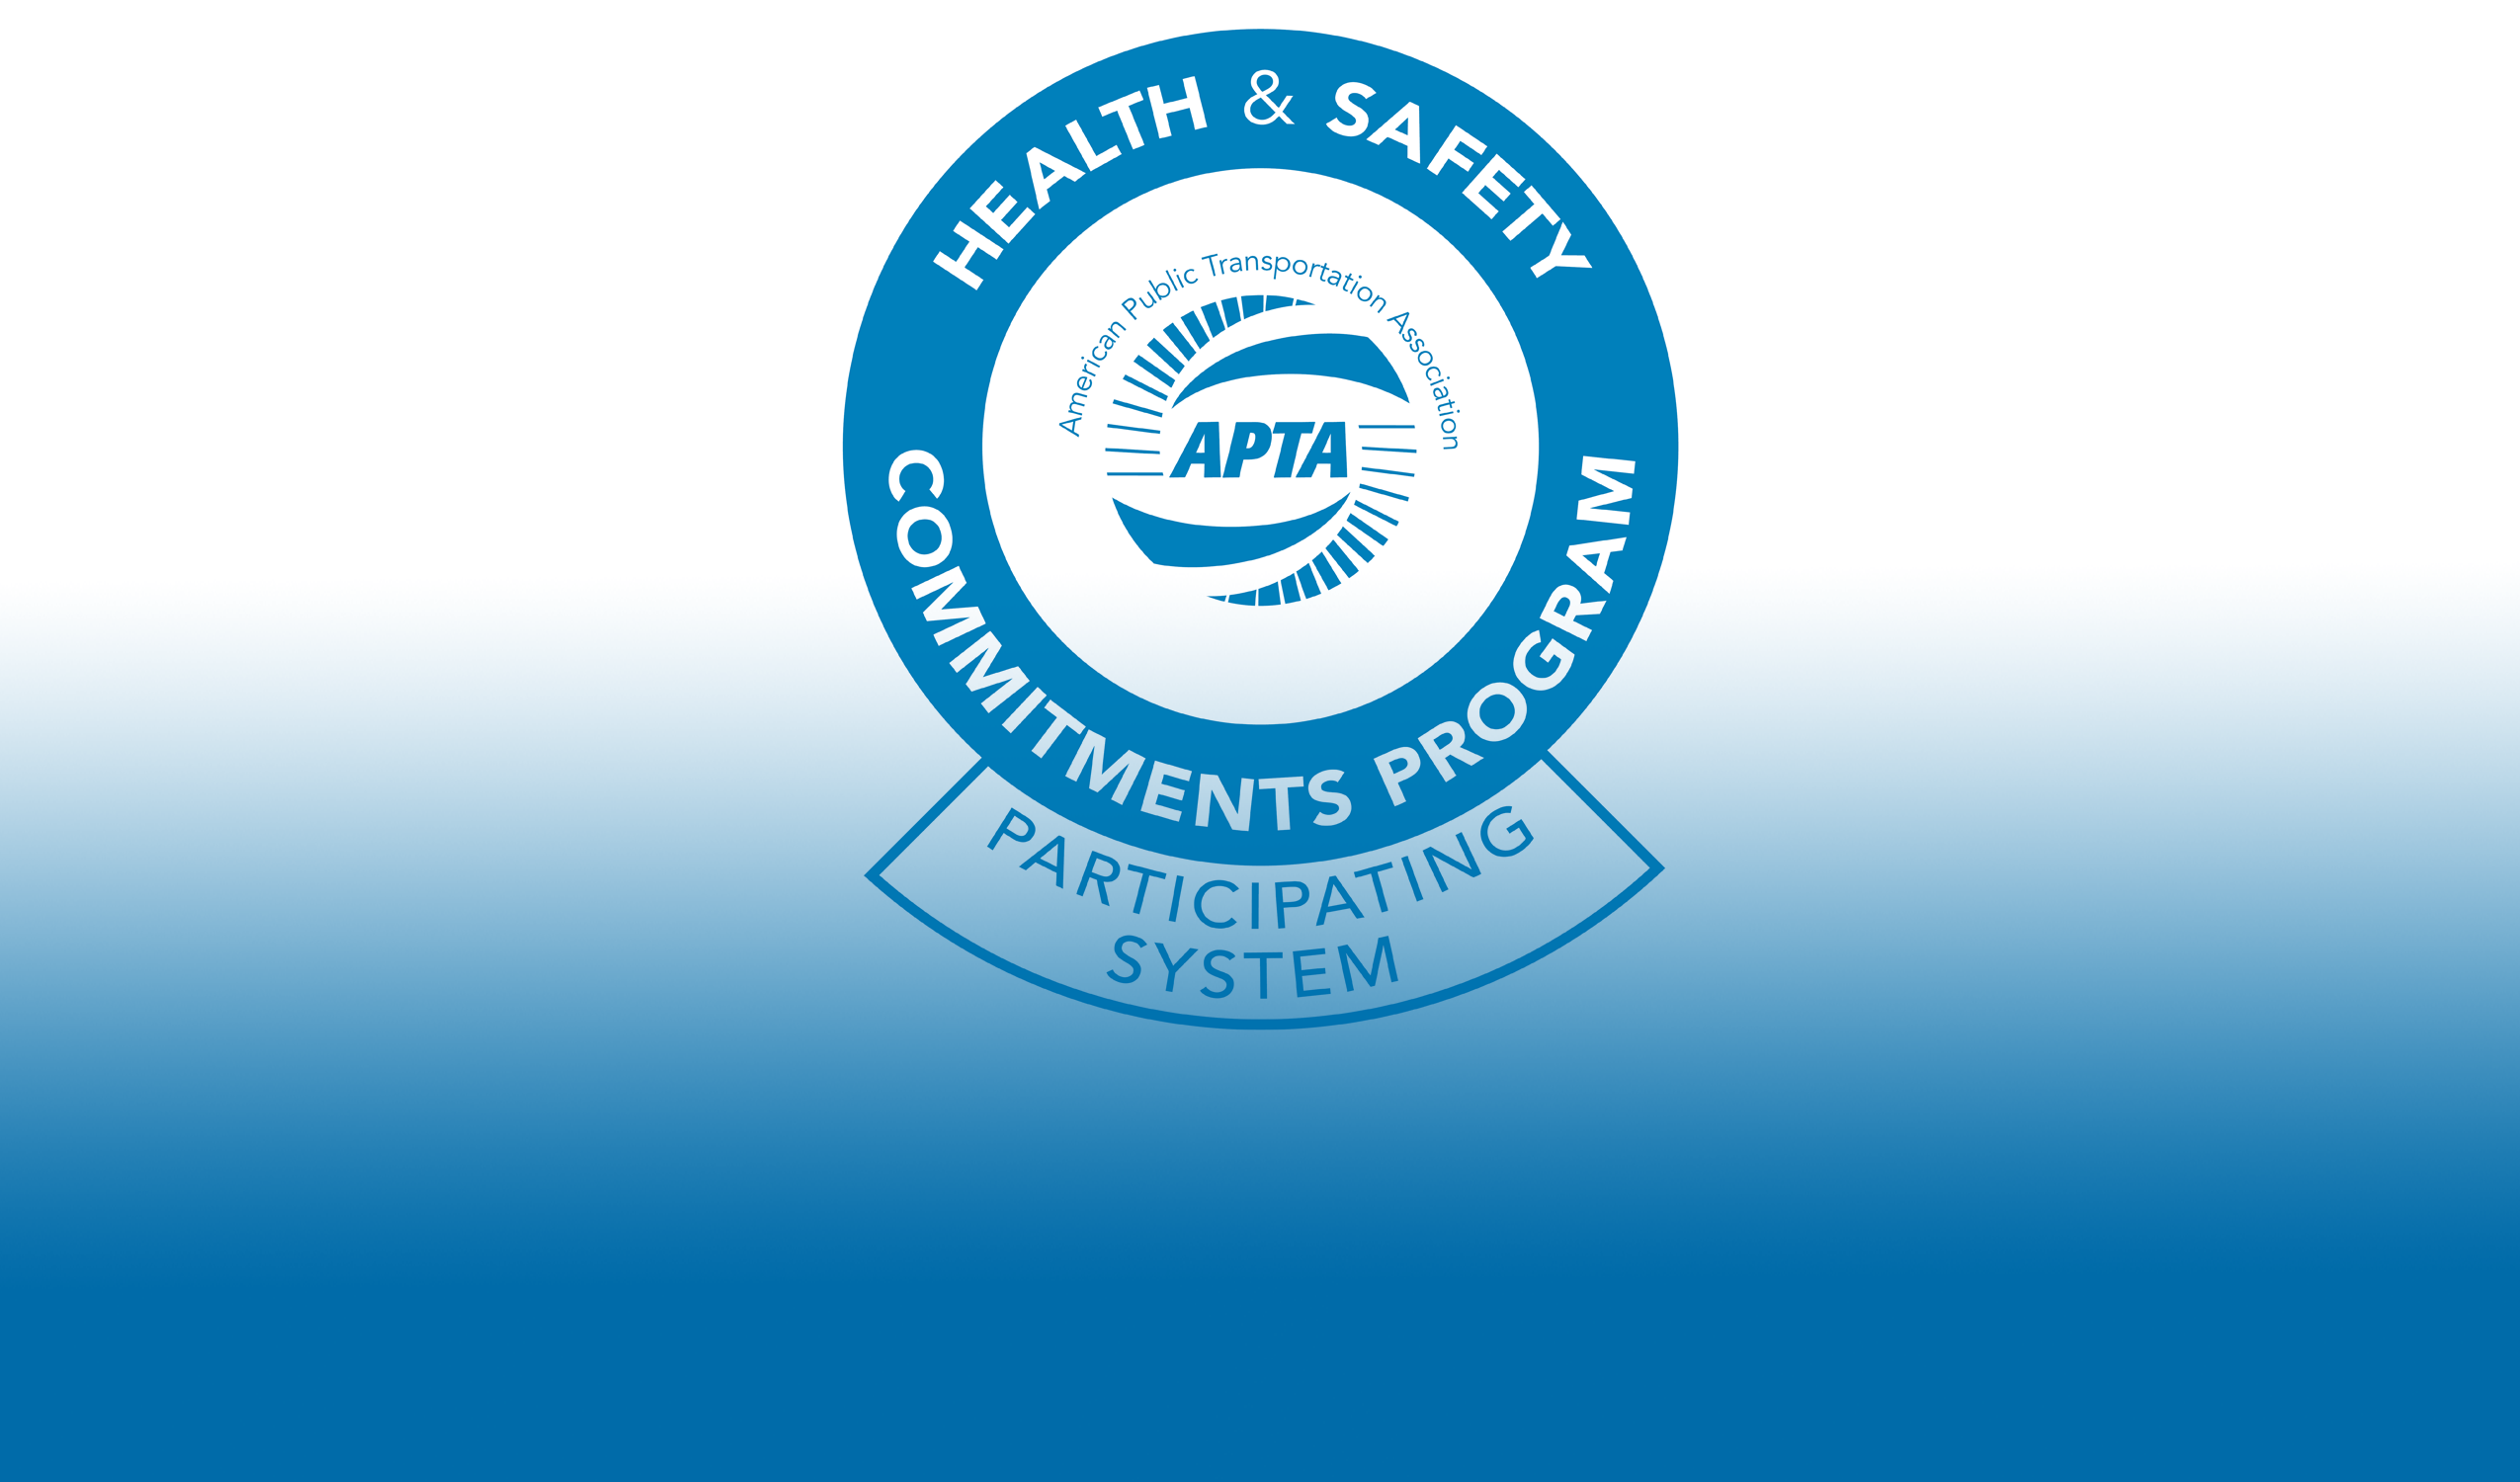 Health and Safety Commitments Program Seal for News